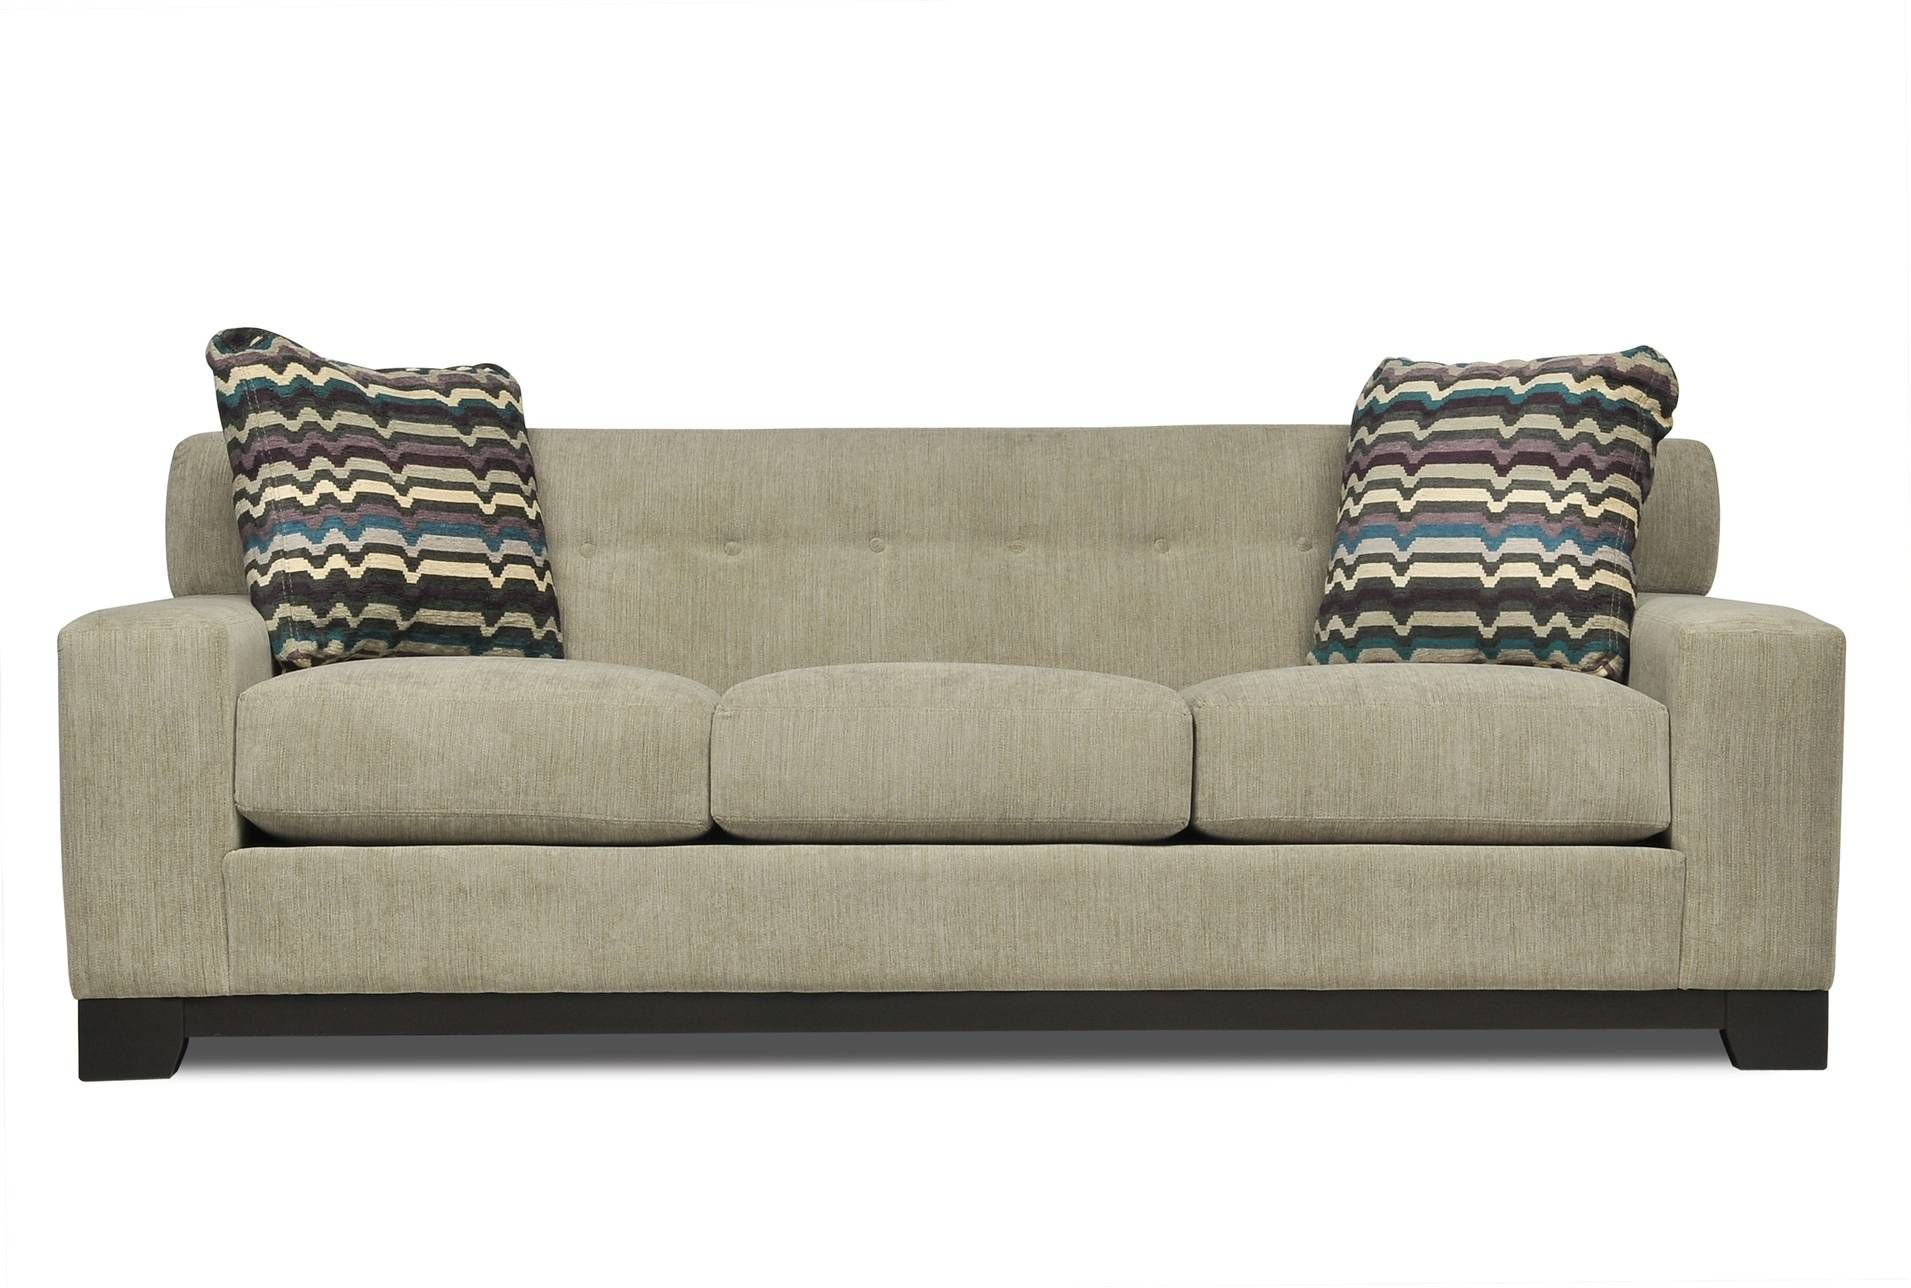 Rory Sofa – Deep Sofa W/ Comfy Fabric Material! | Home | Decor For Rory Sofa Chairs (Image 20 of 25)